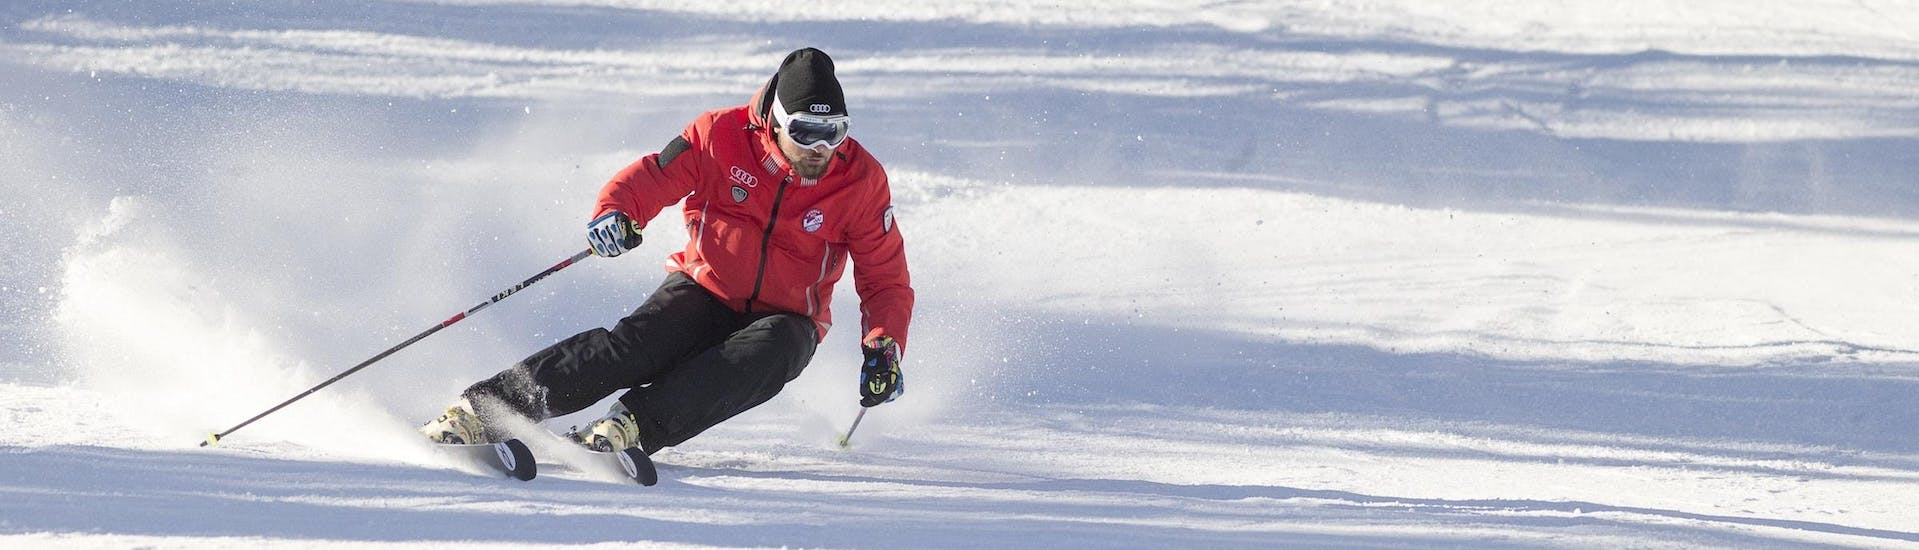 A ski instructor from Scuola Sci Cortina is demonstrating the right skiing technique during one of the Ski Lessons for Adults - With experience in the ski resort of Cortina d'Ampezzo.